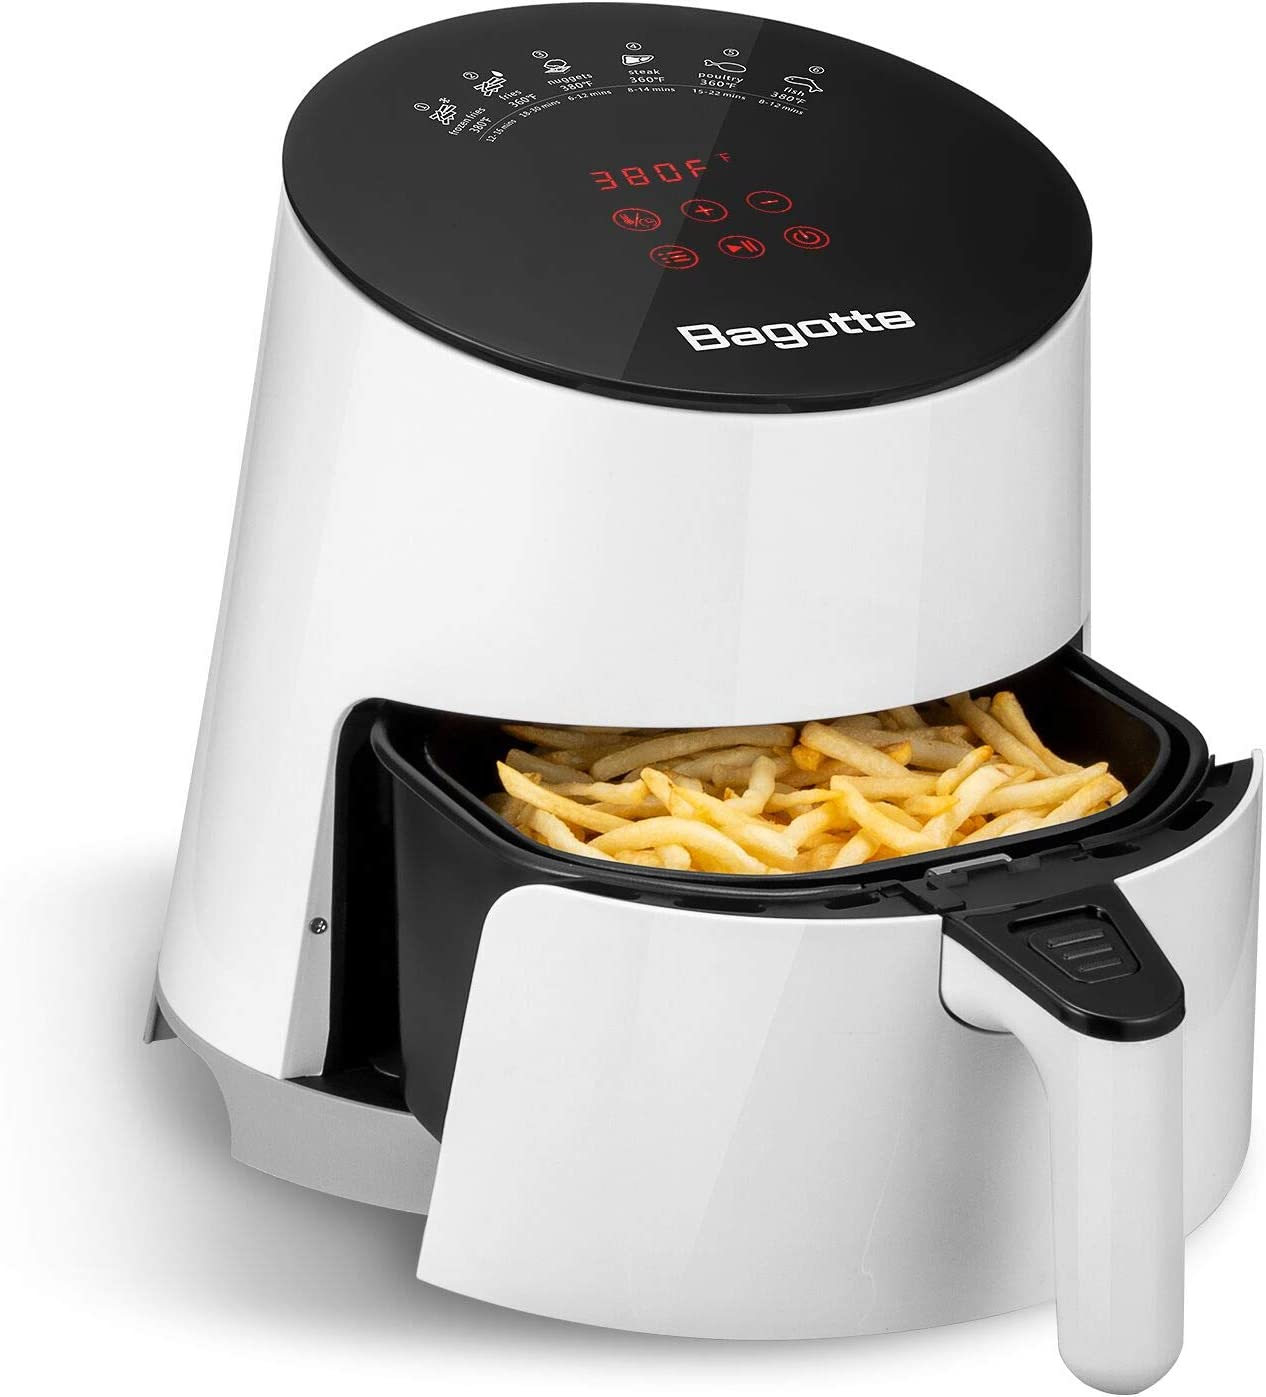 Bagotte 3.7 Quart Air Fryer